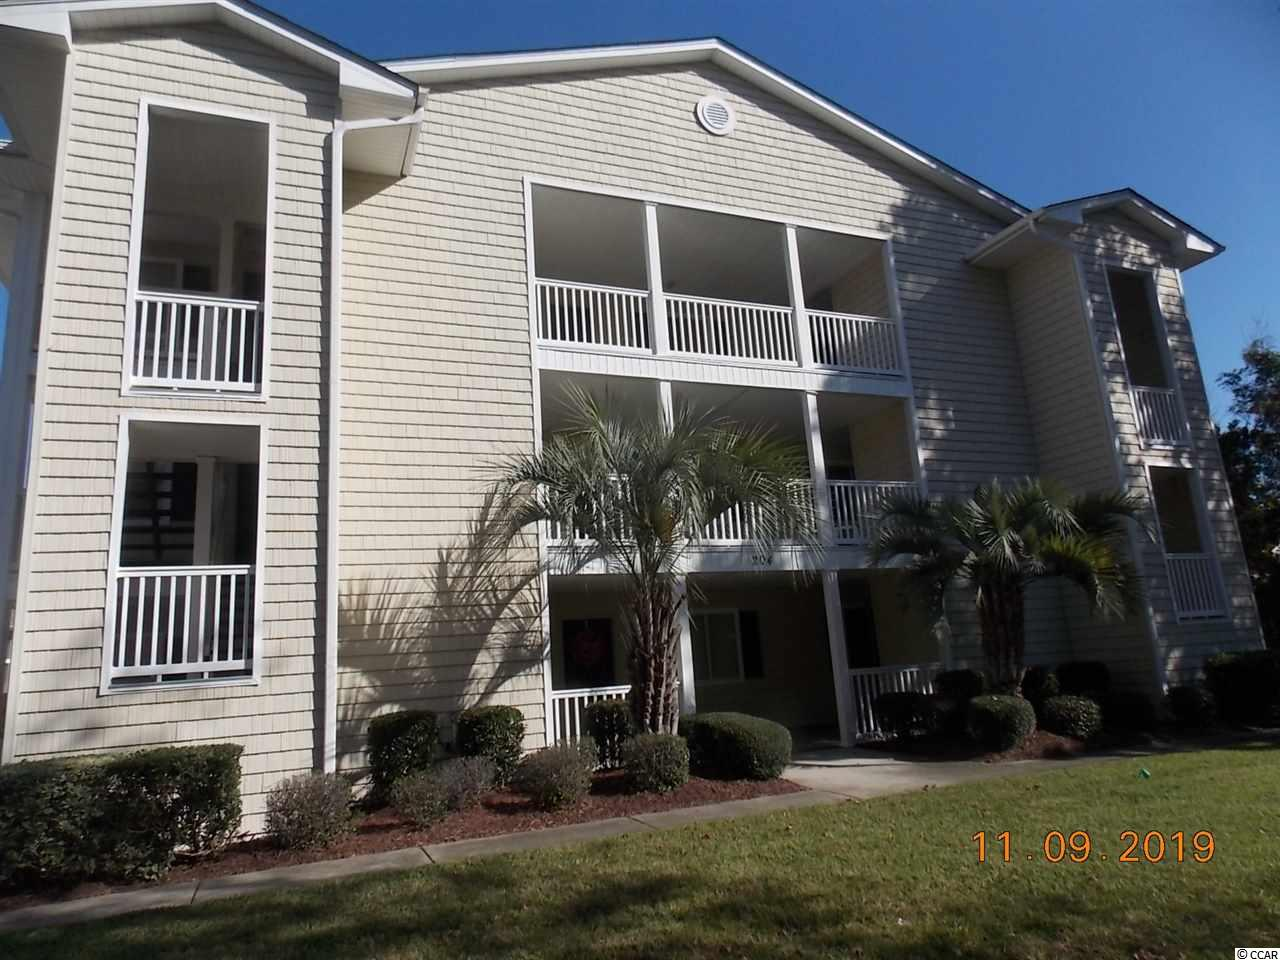 Quiet gated community, Very clean furnished 1 bedroom condo on 2nd floor screened in porch over looking pool. Rear balcony setting area over looking the community yard. Storage Room. HVAC replaced in 2008, 6 month old hot water heater, Roof and siding have been replaced in 2005, just minutes away from the beach, golfing, shopping, restaurants, entertainment close to Main Street. Get for 2nd home or investment. WILL NOT LAST LONG, MAKE AN OFFER TODAY.